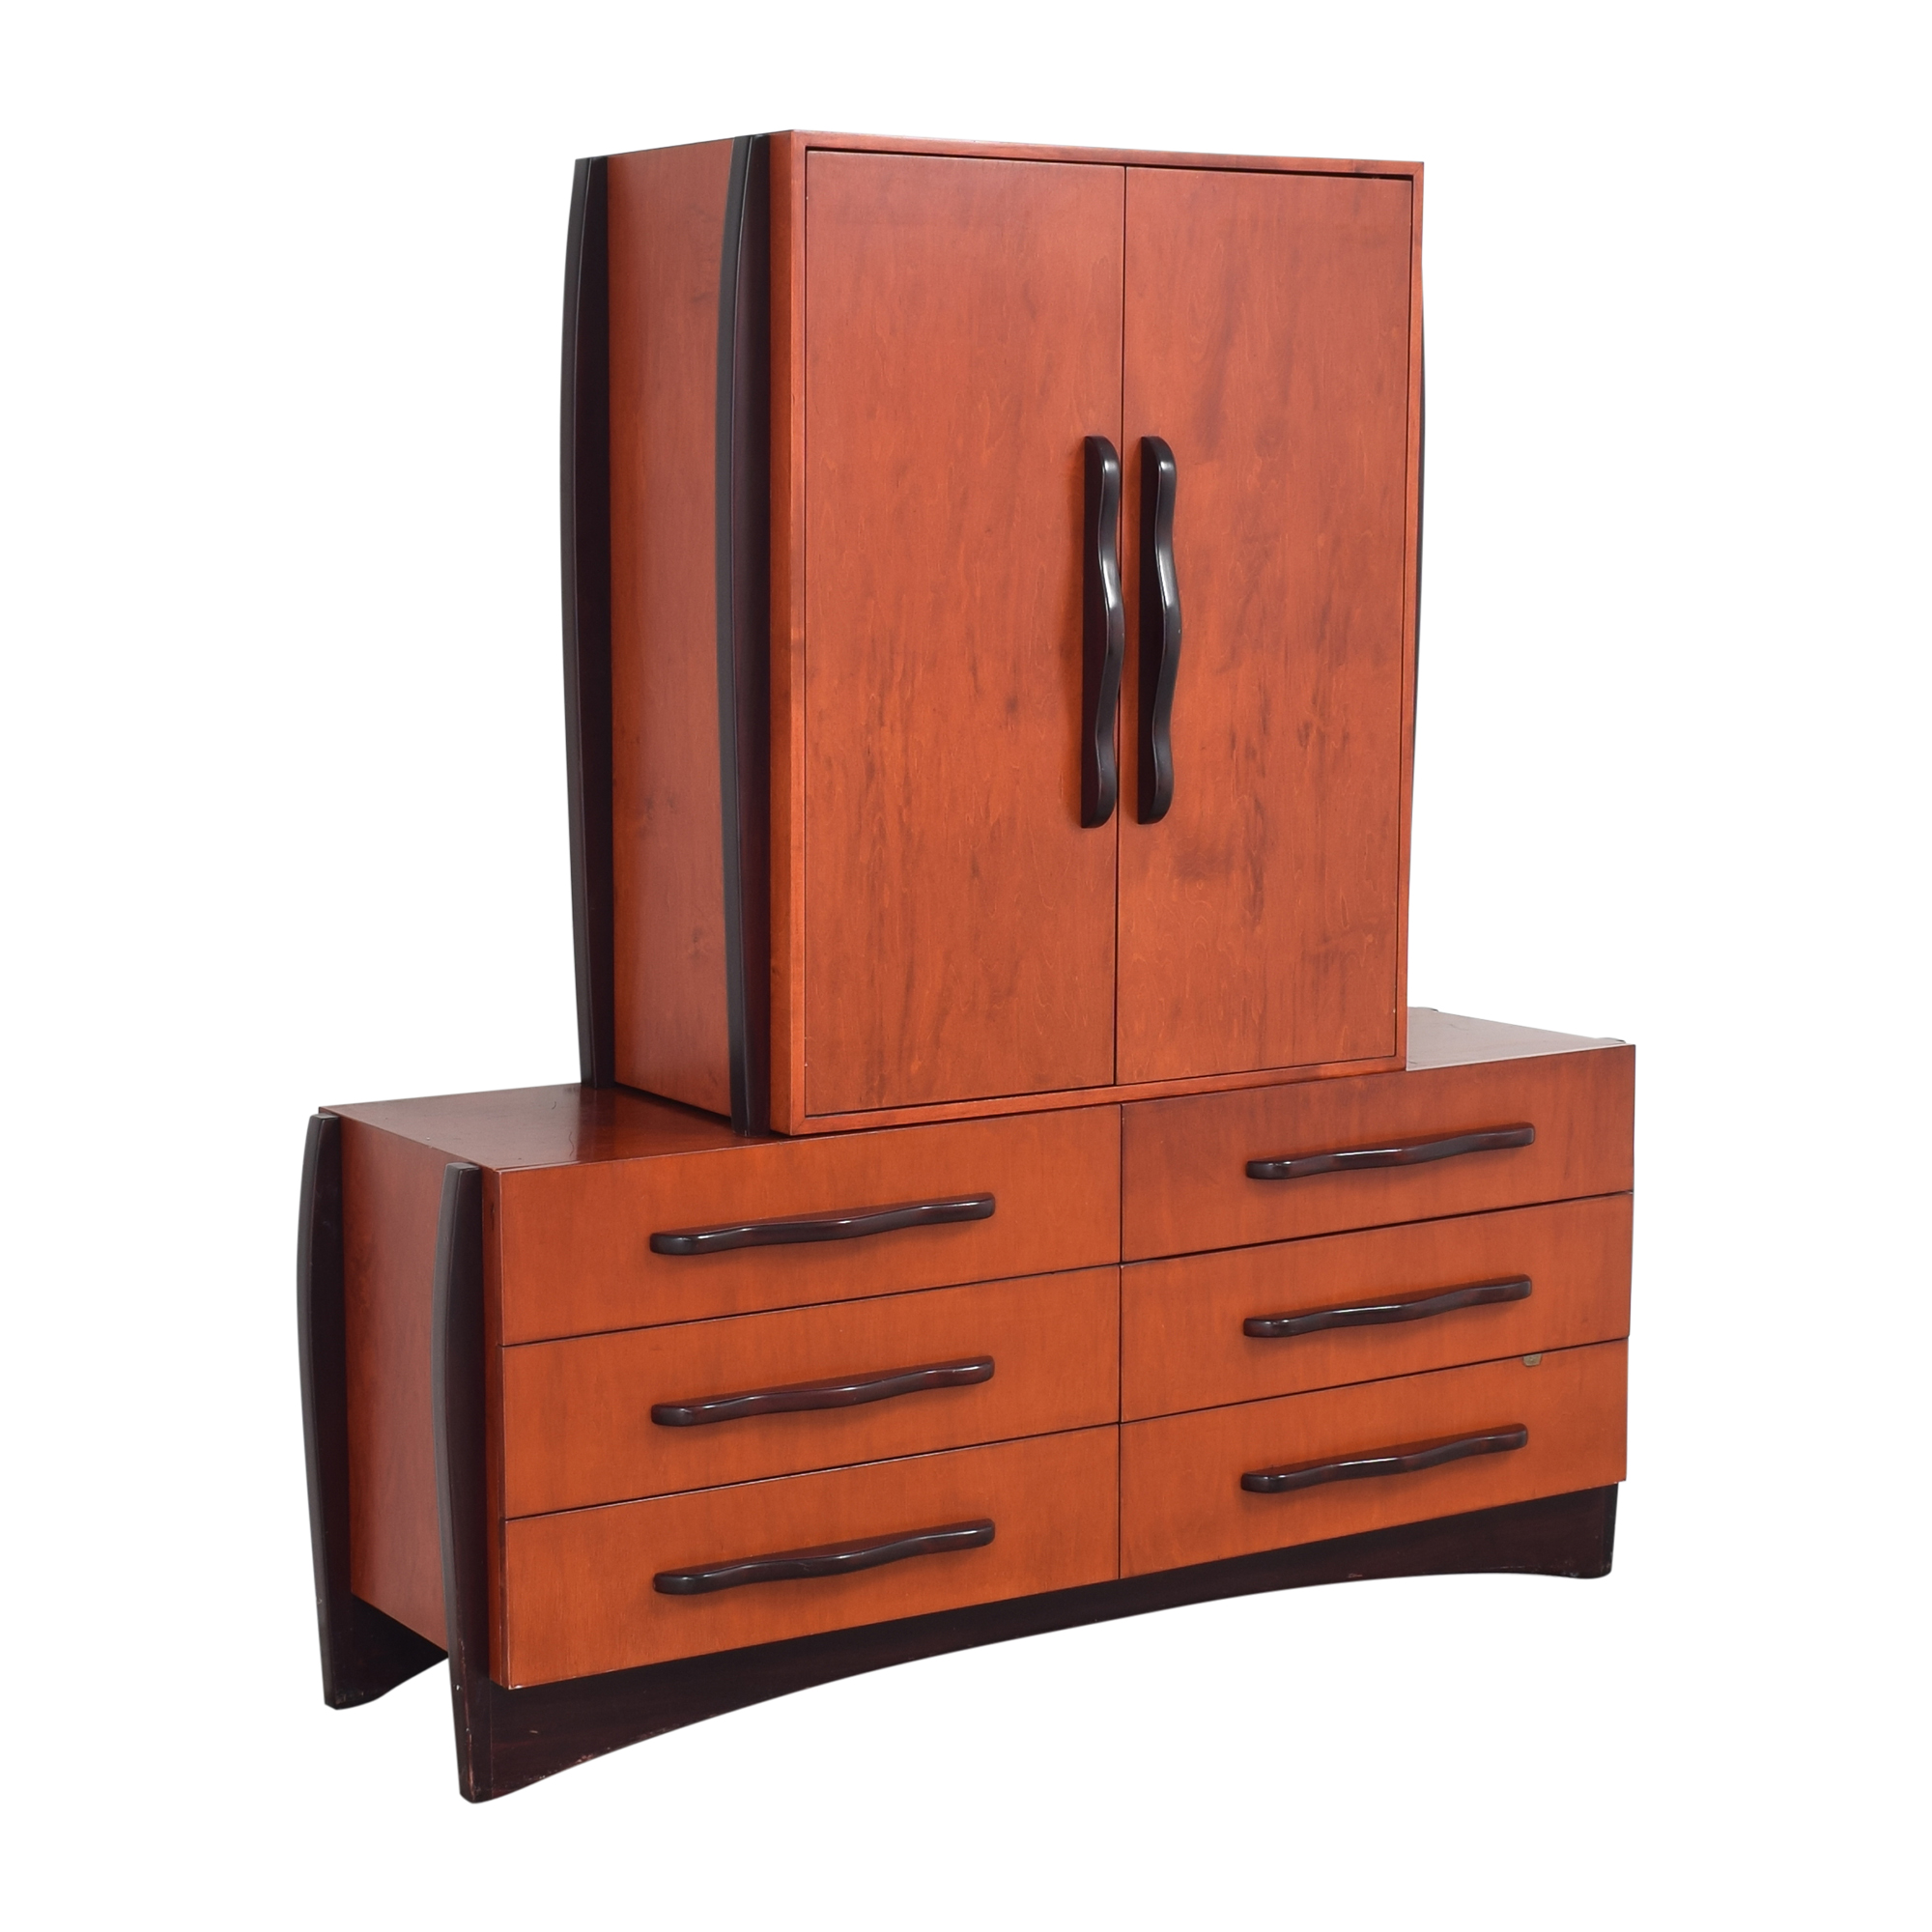 Dialogica Dialogica Malindi Double Dresser with Media Cabinet  for sale